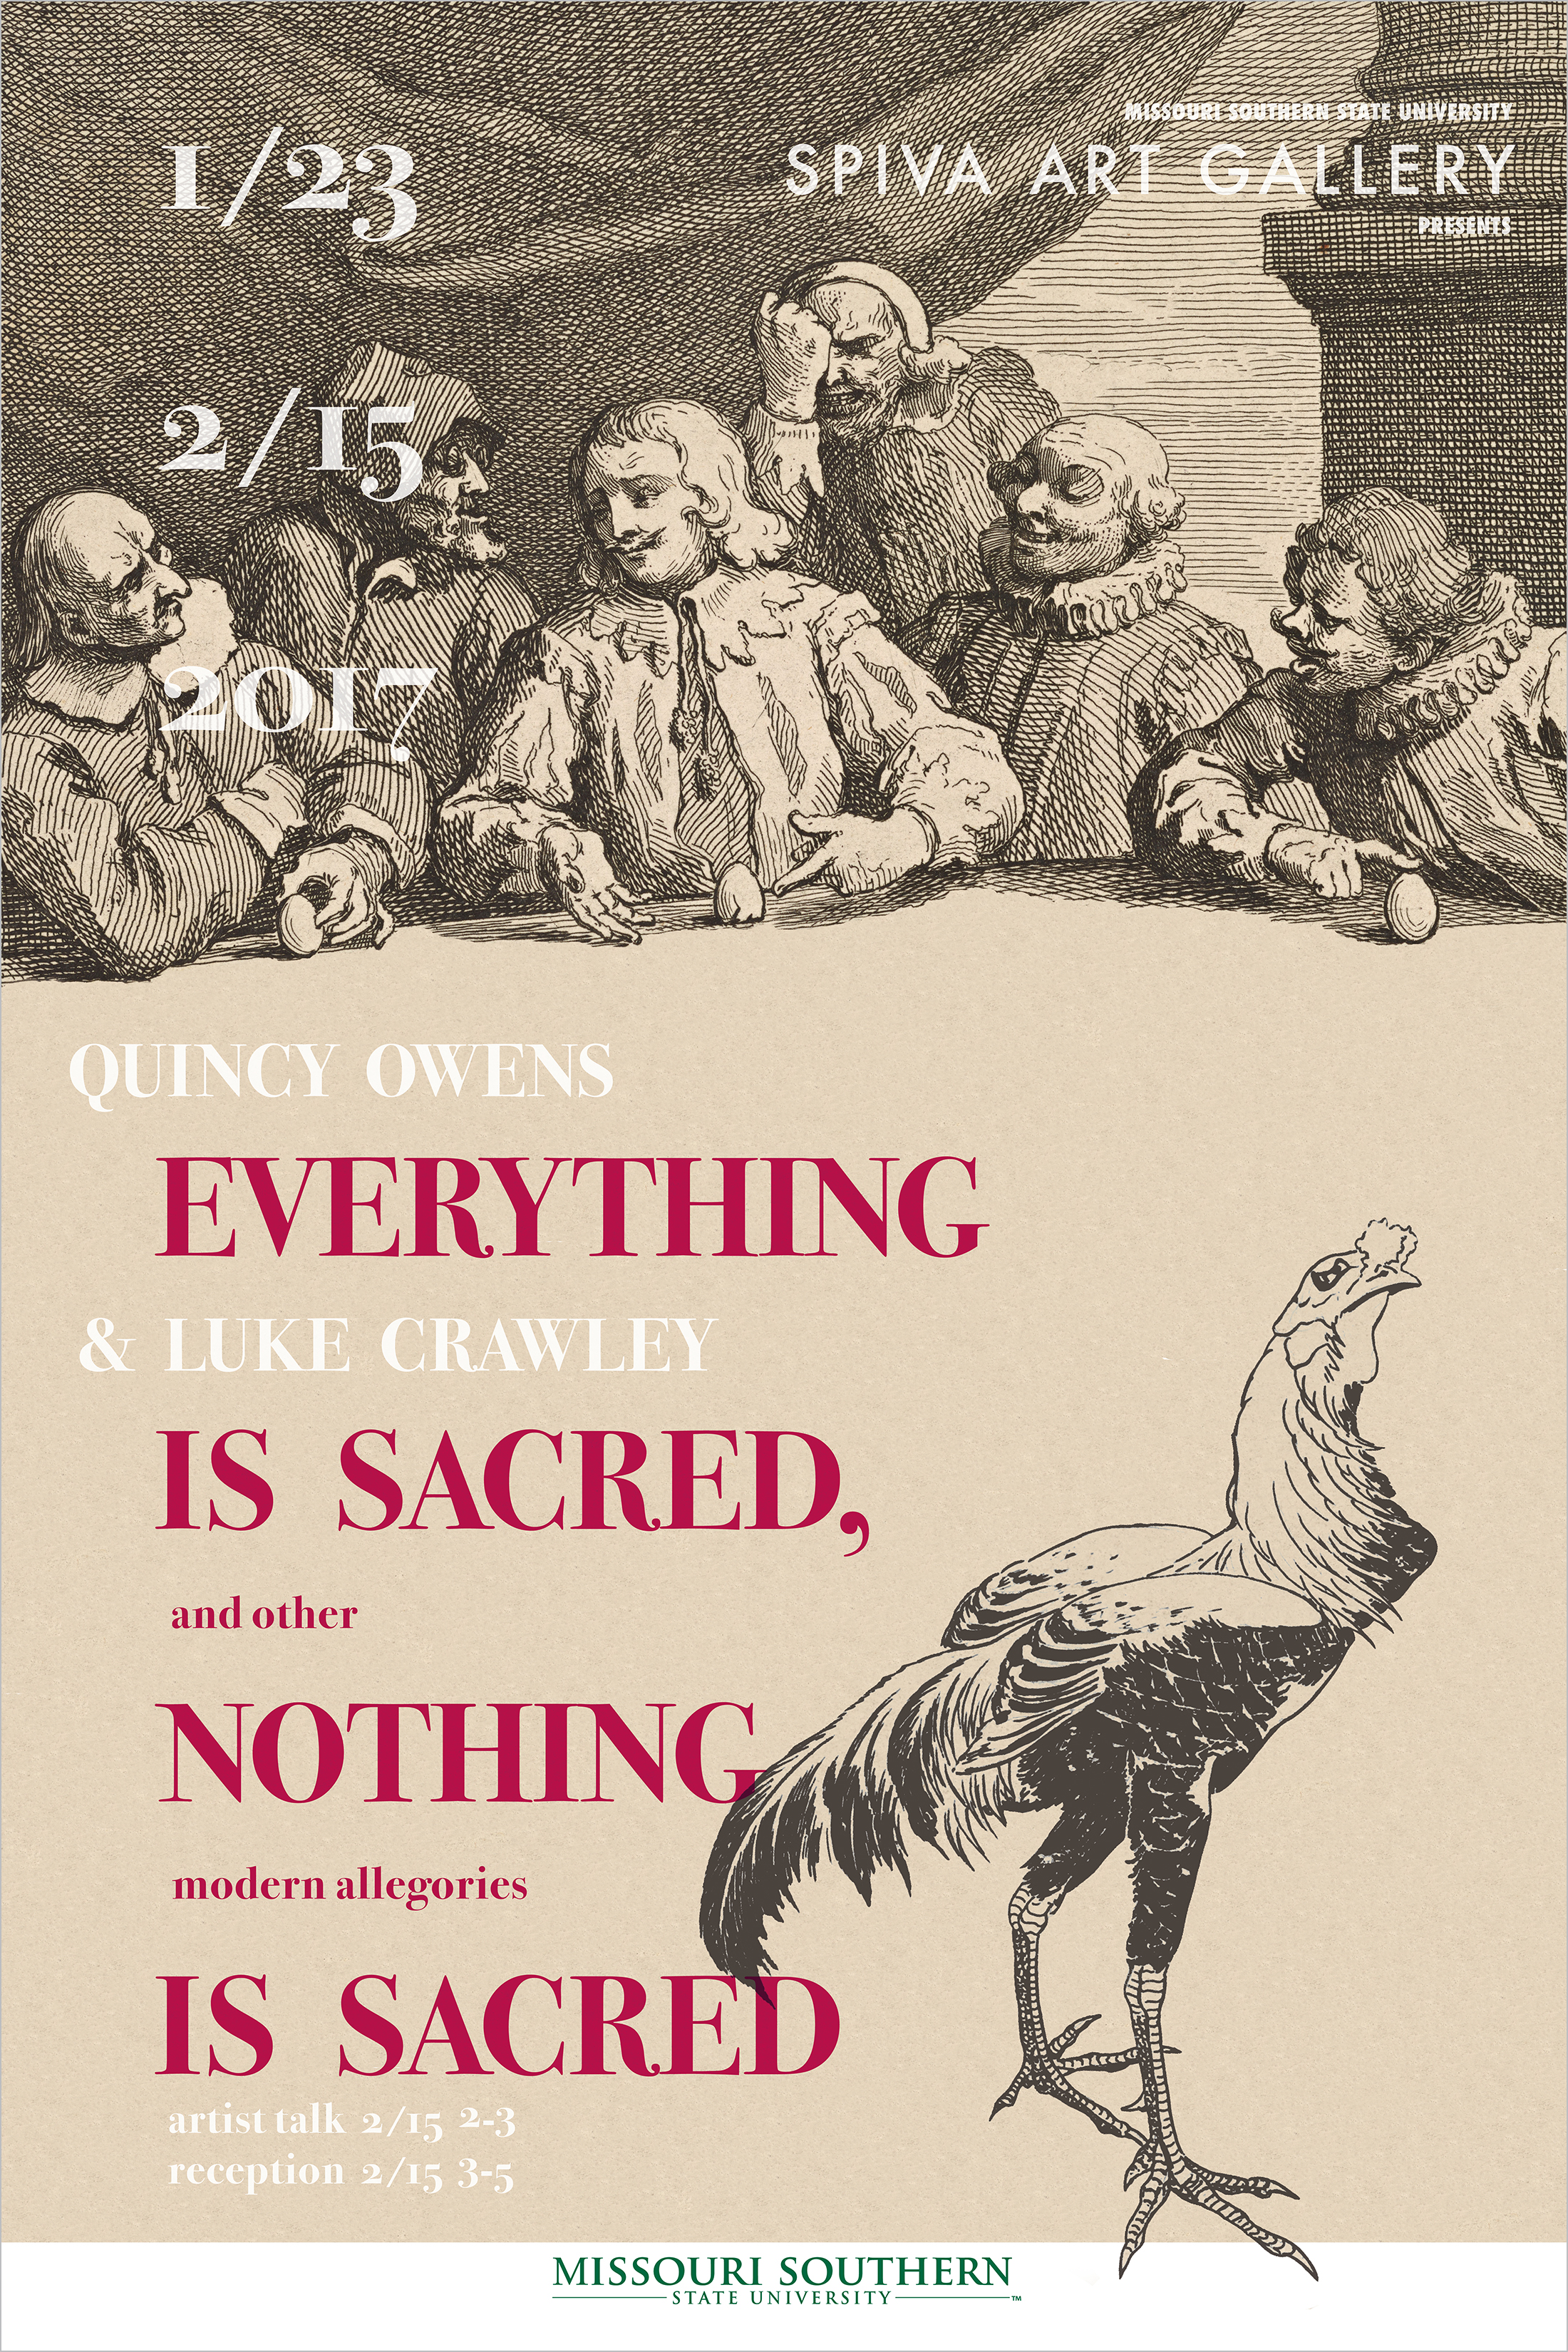 Quincy Owens & Luke Crawley, Everything is Sacred Nothing is Sacred